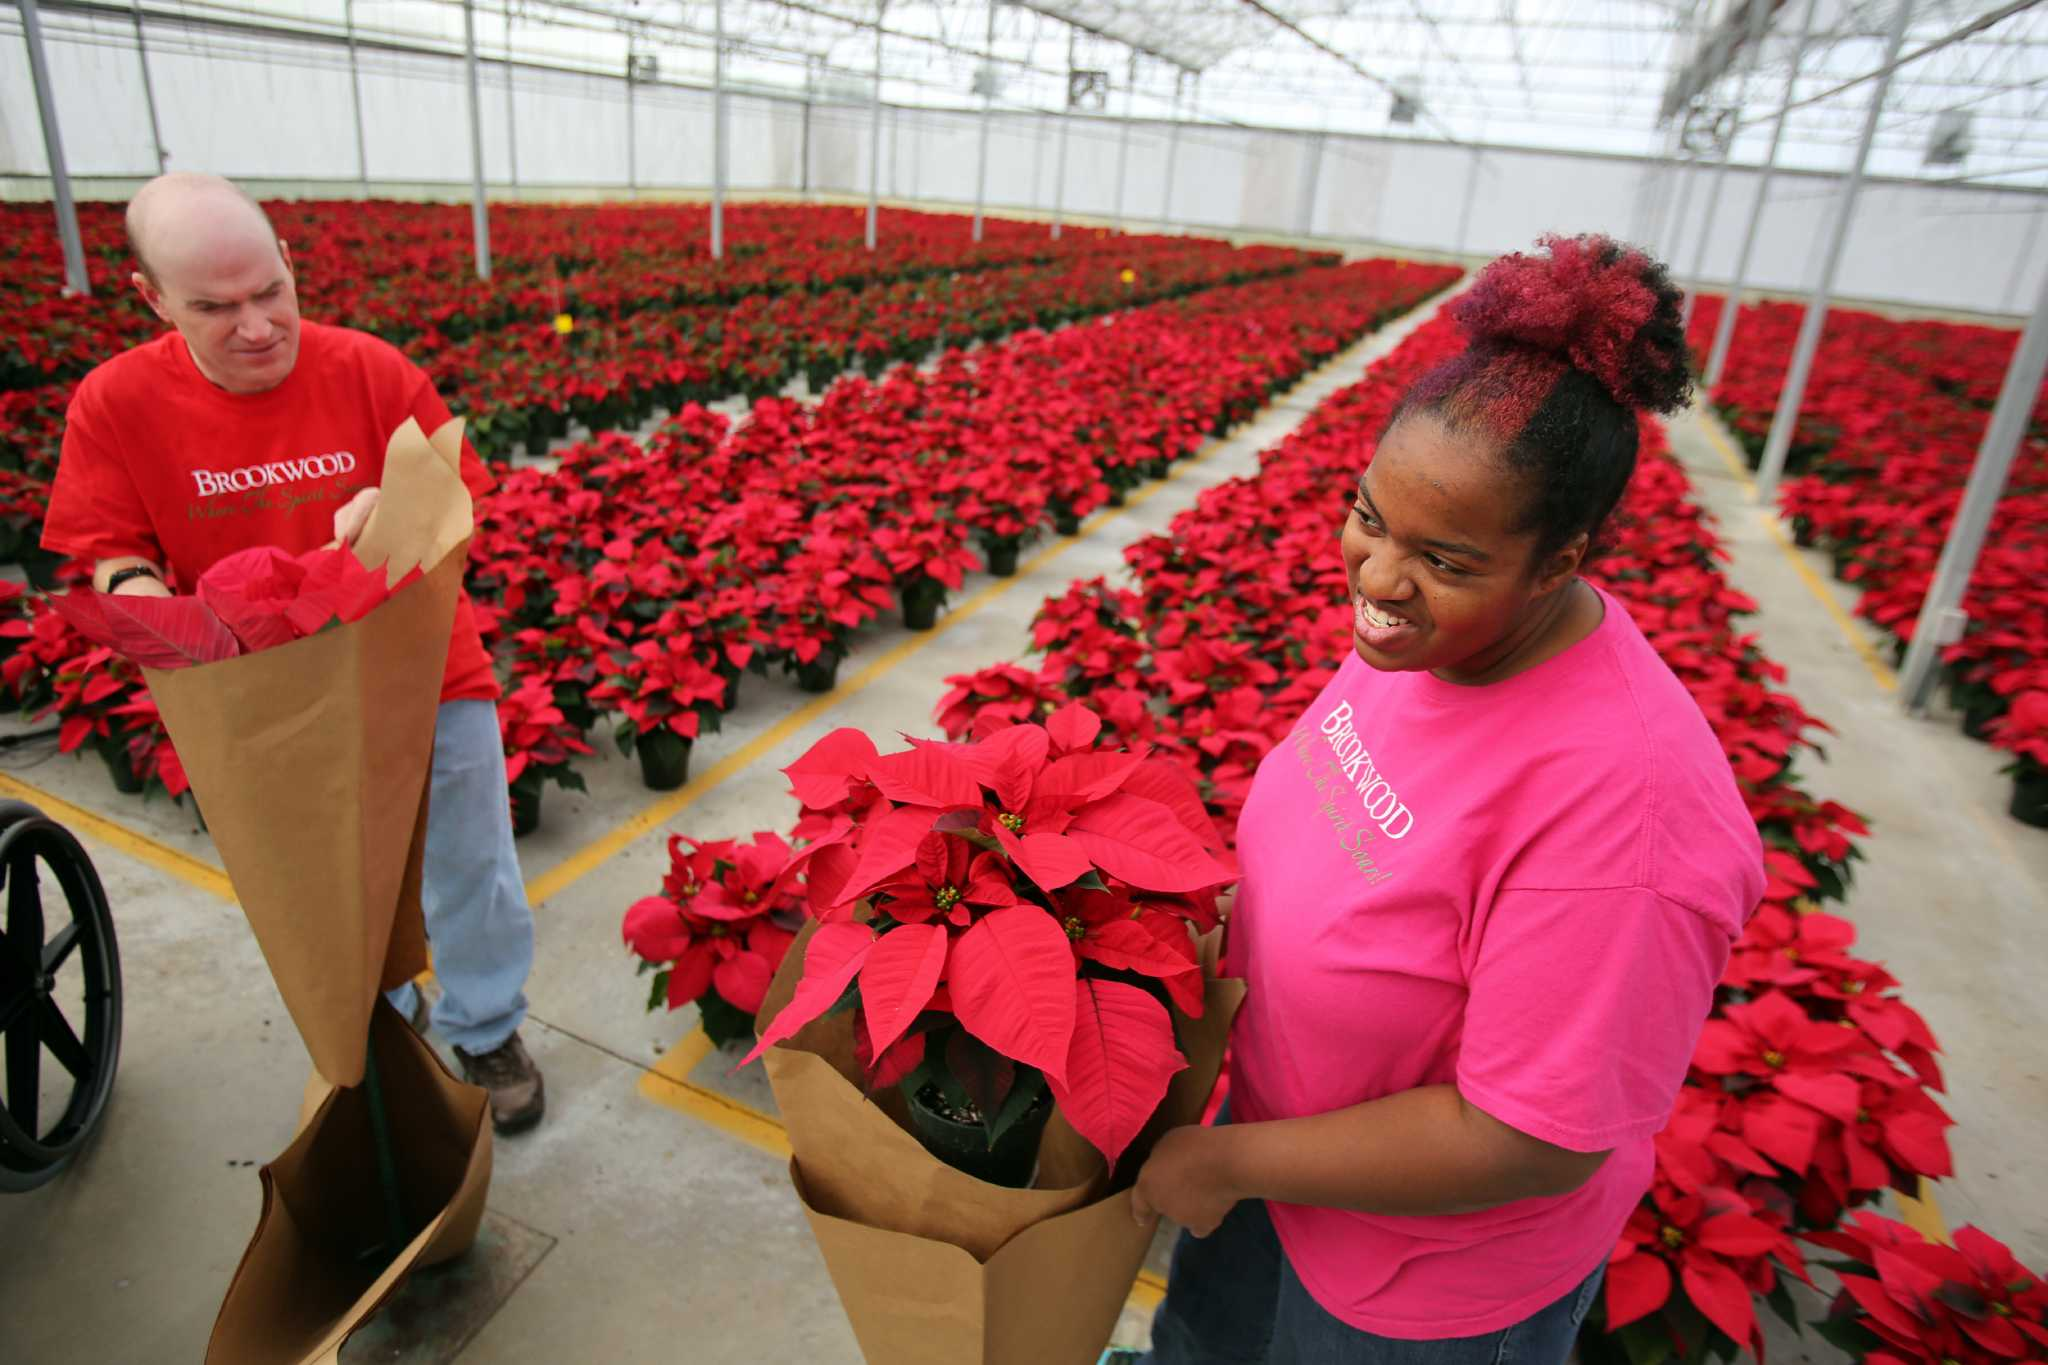 Brookwood S 46 500 Poinsettias Ready For The Holidays Houstonchronicle Com